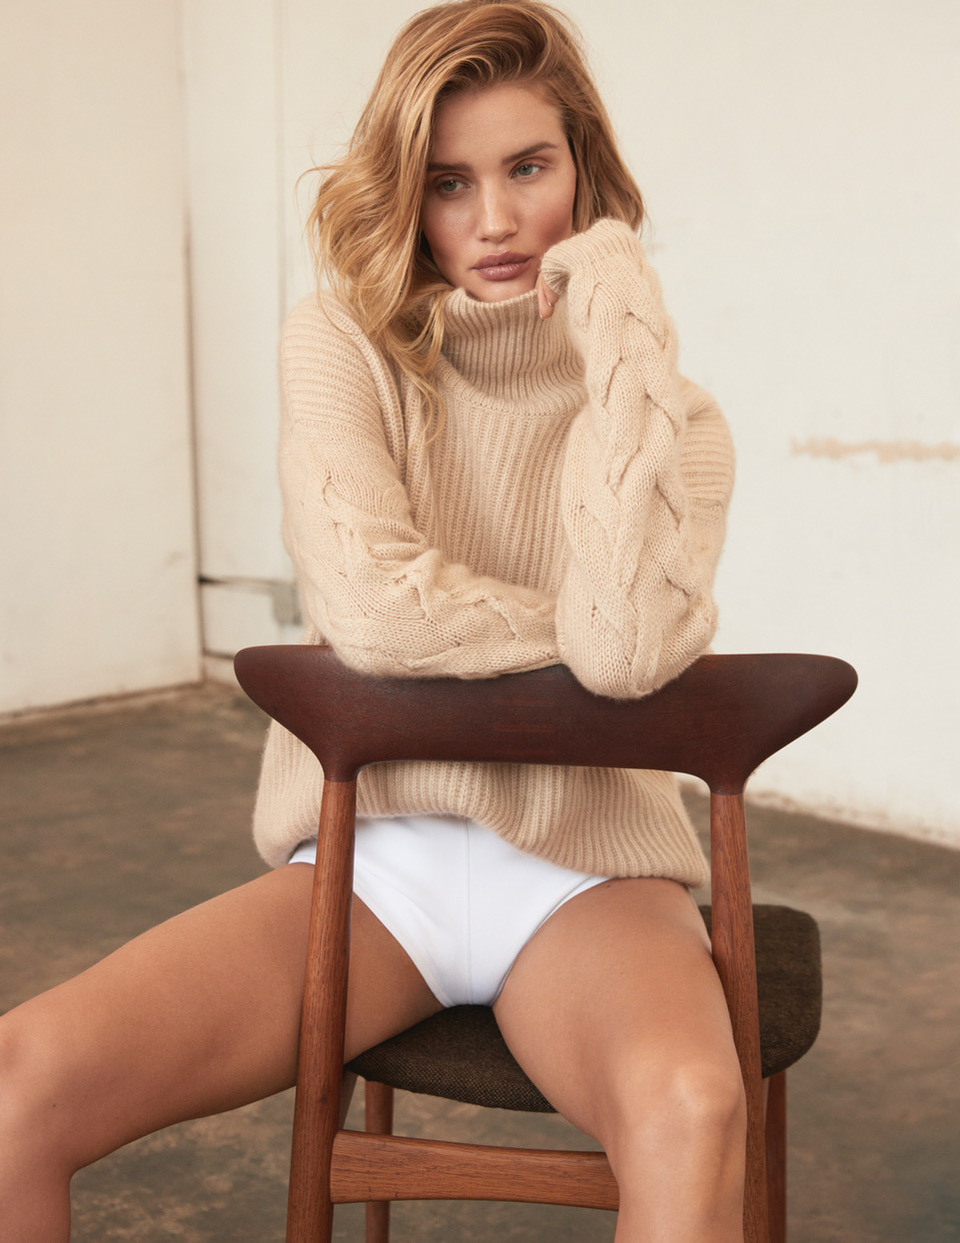 ROSIE_HUNTINGTON_WHITLEY_SHOT_03_051_2514DR_C_ADOBERGB